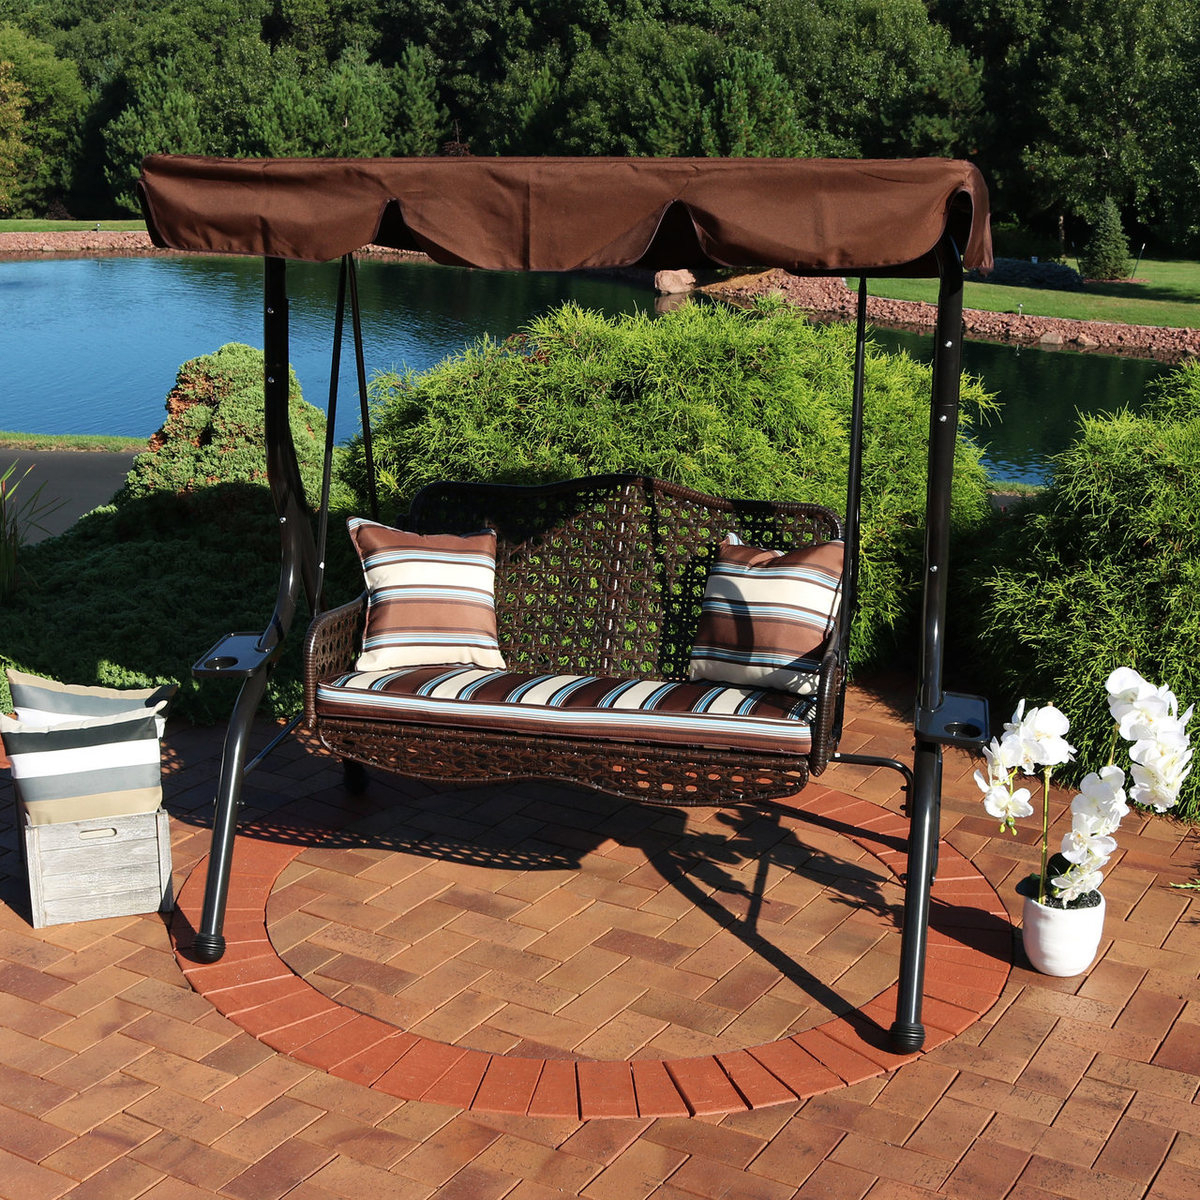 Brown Cushions And Pillow Included Sunnydaze 3 Person Within 3 Person Brown Steel Outdoor Swings (View 13 of 25)